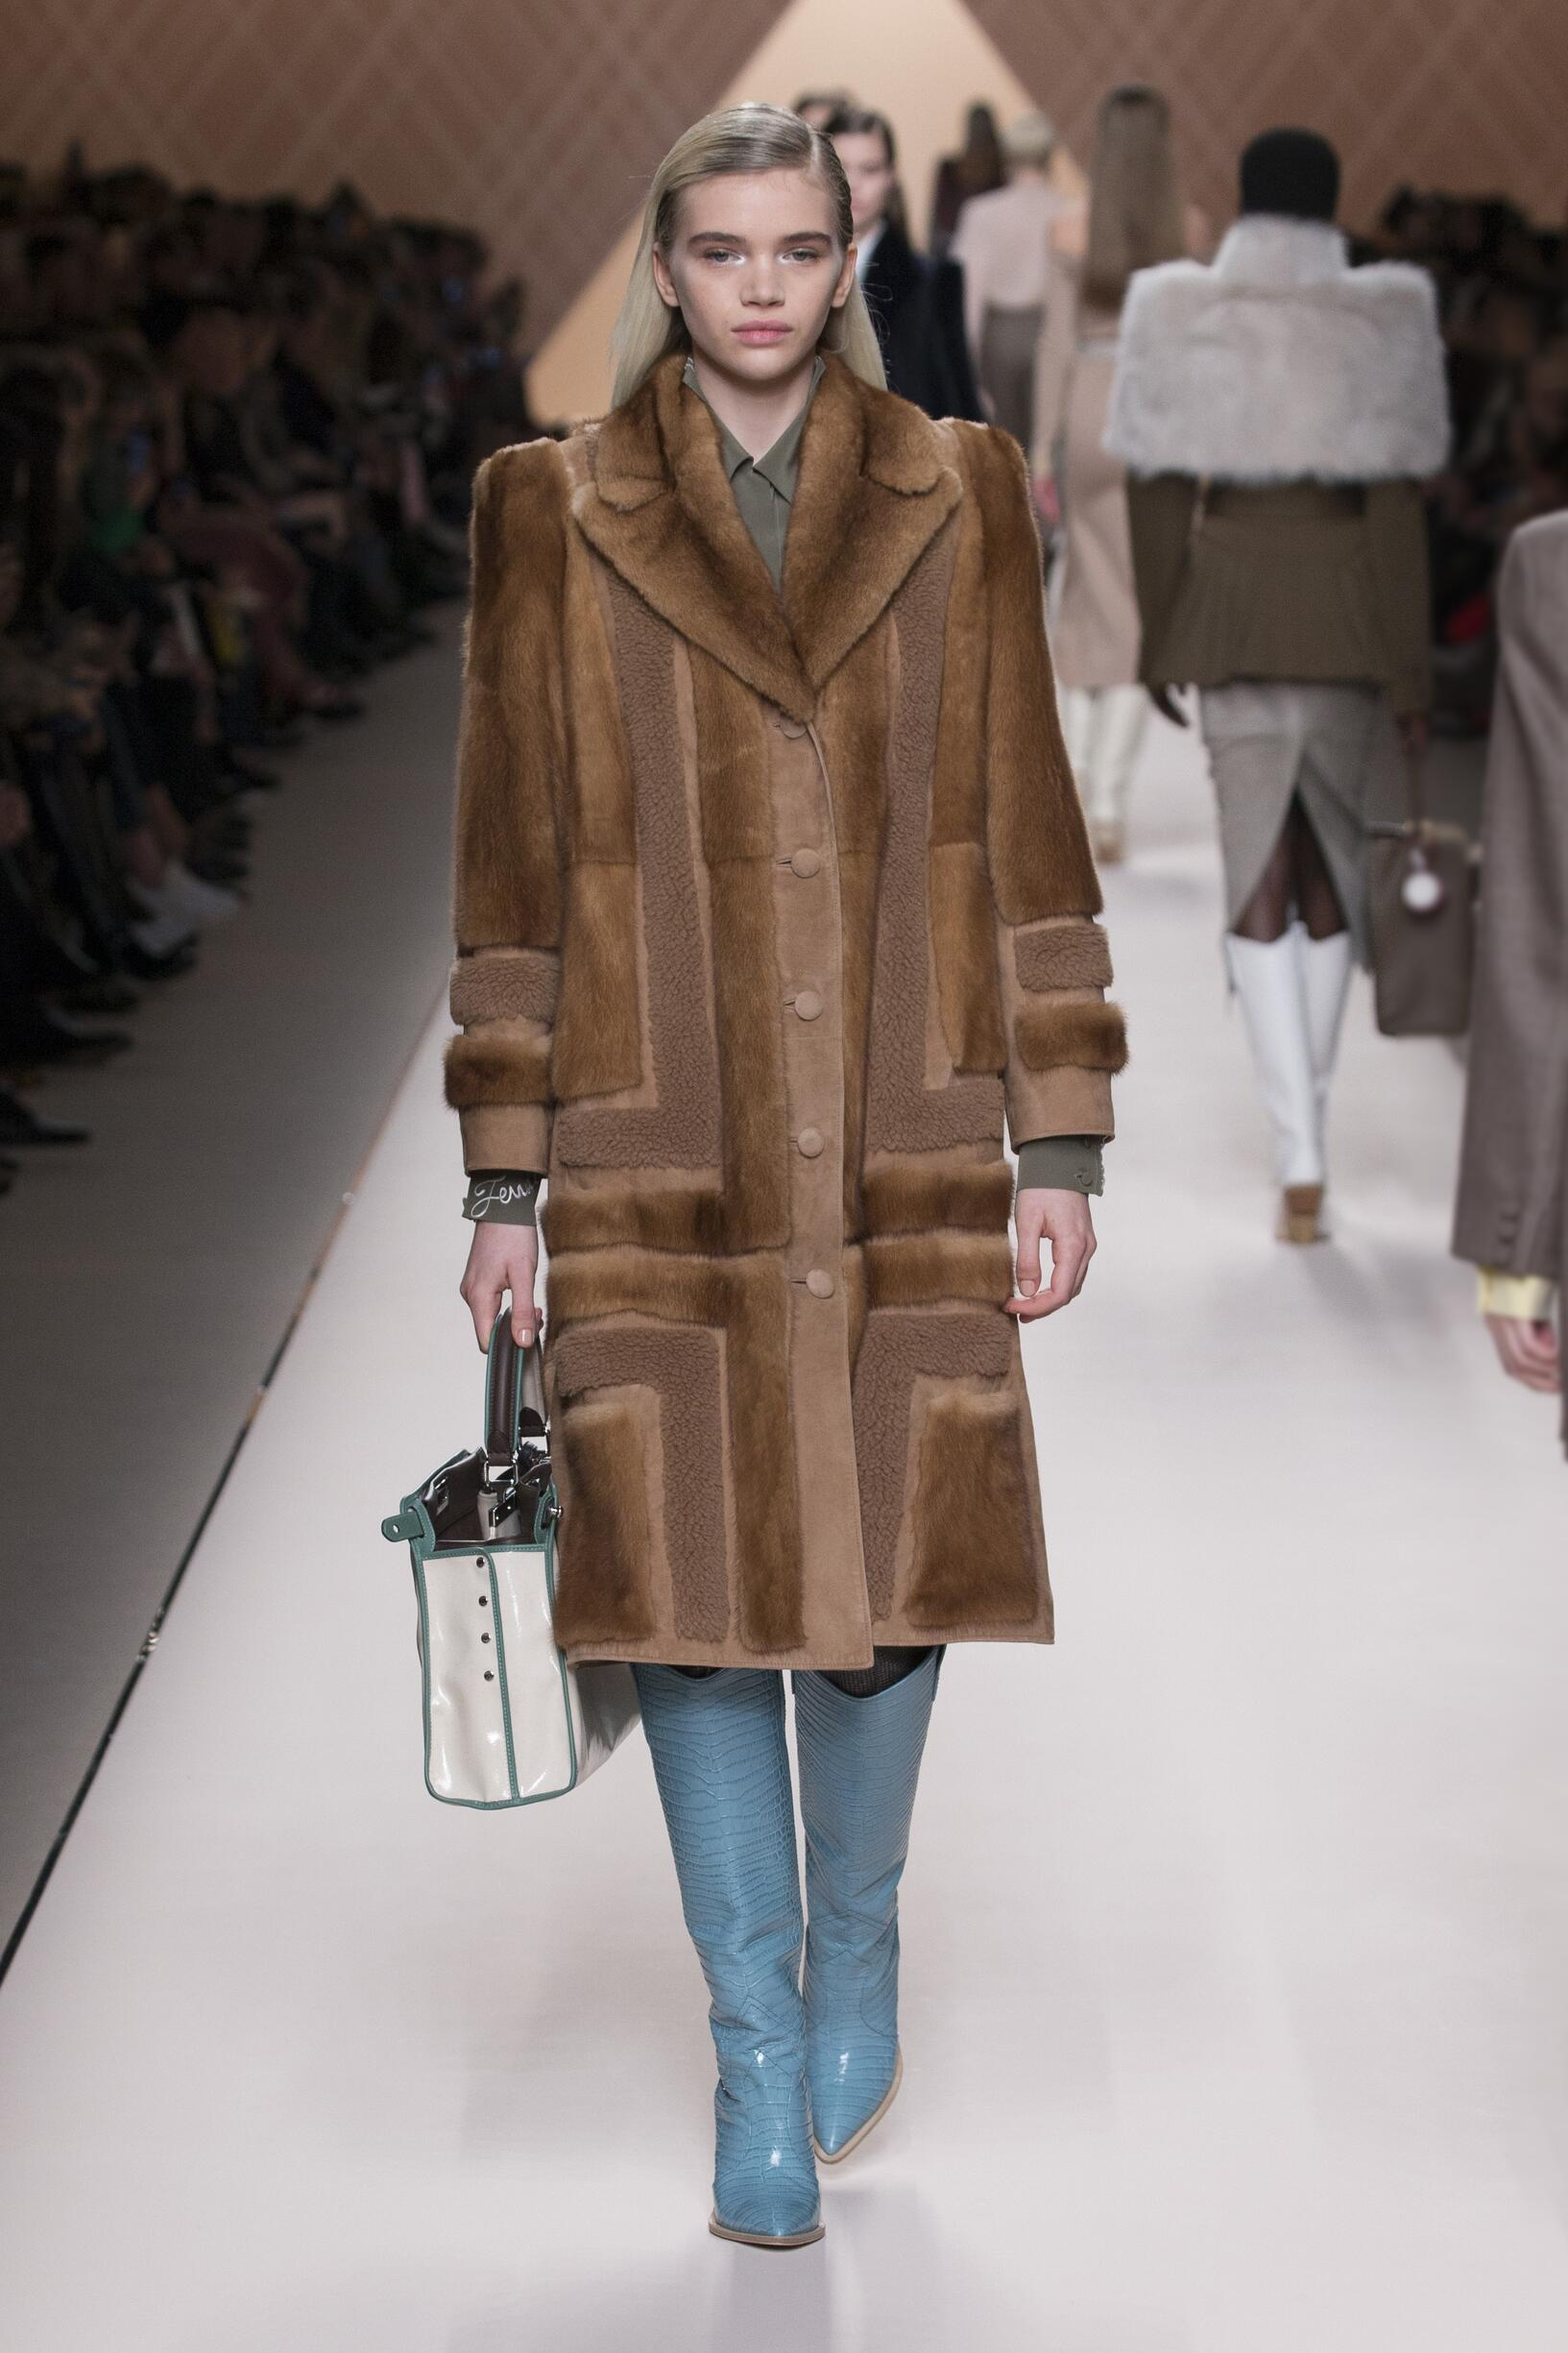 Fendi FW 2018 Womenswear